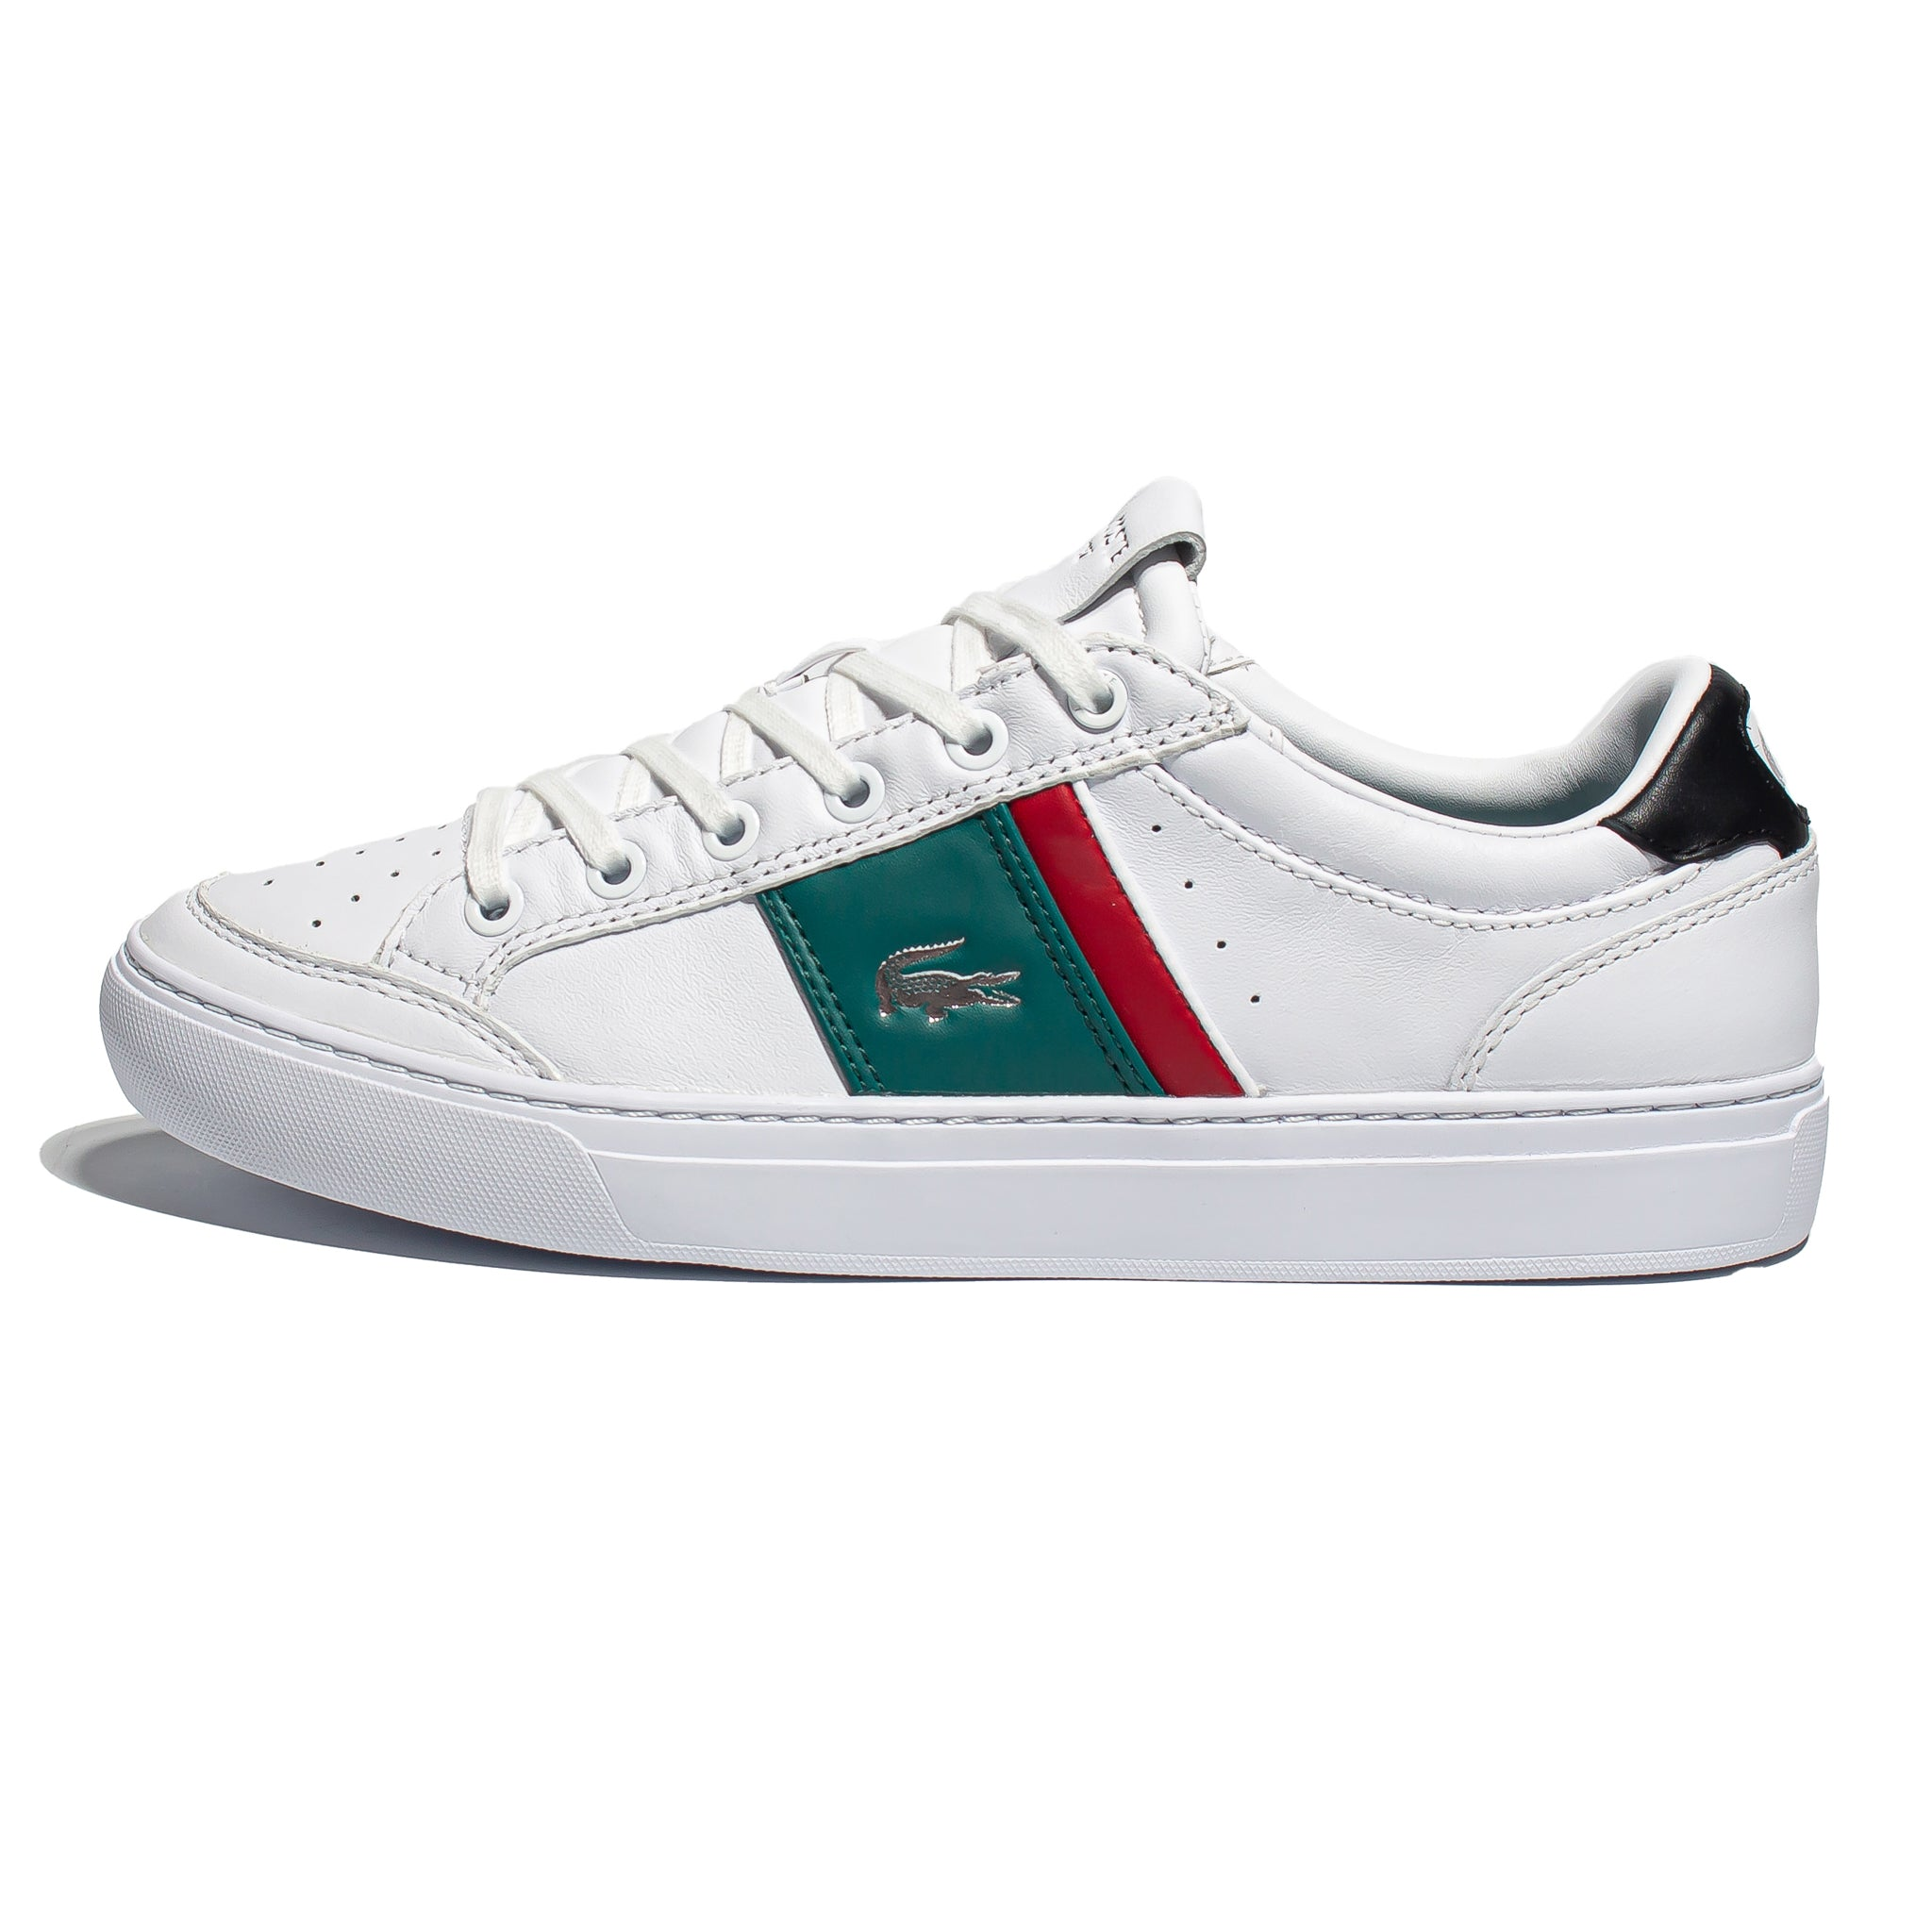 Lacoste Courtline 120 White/Green